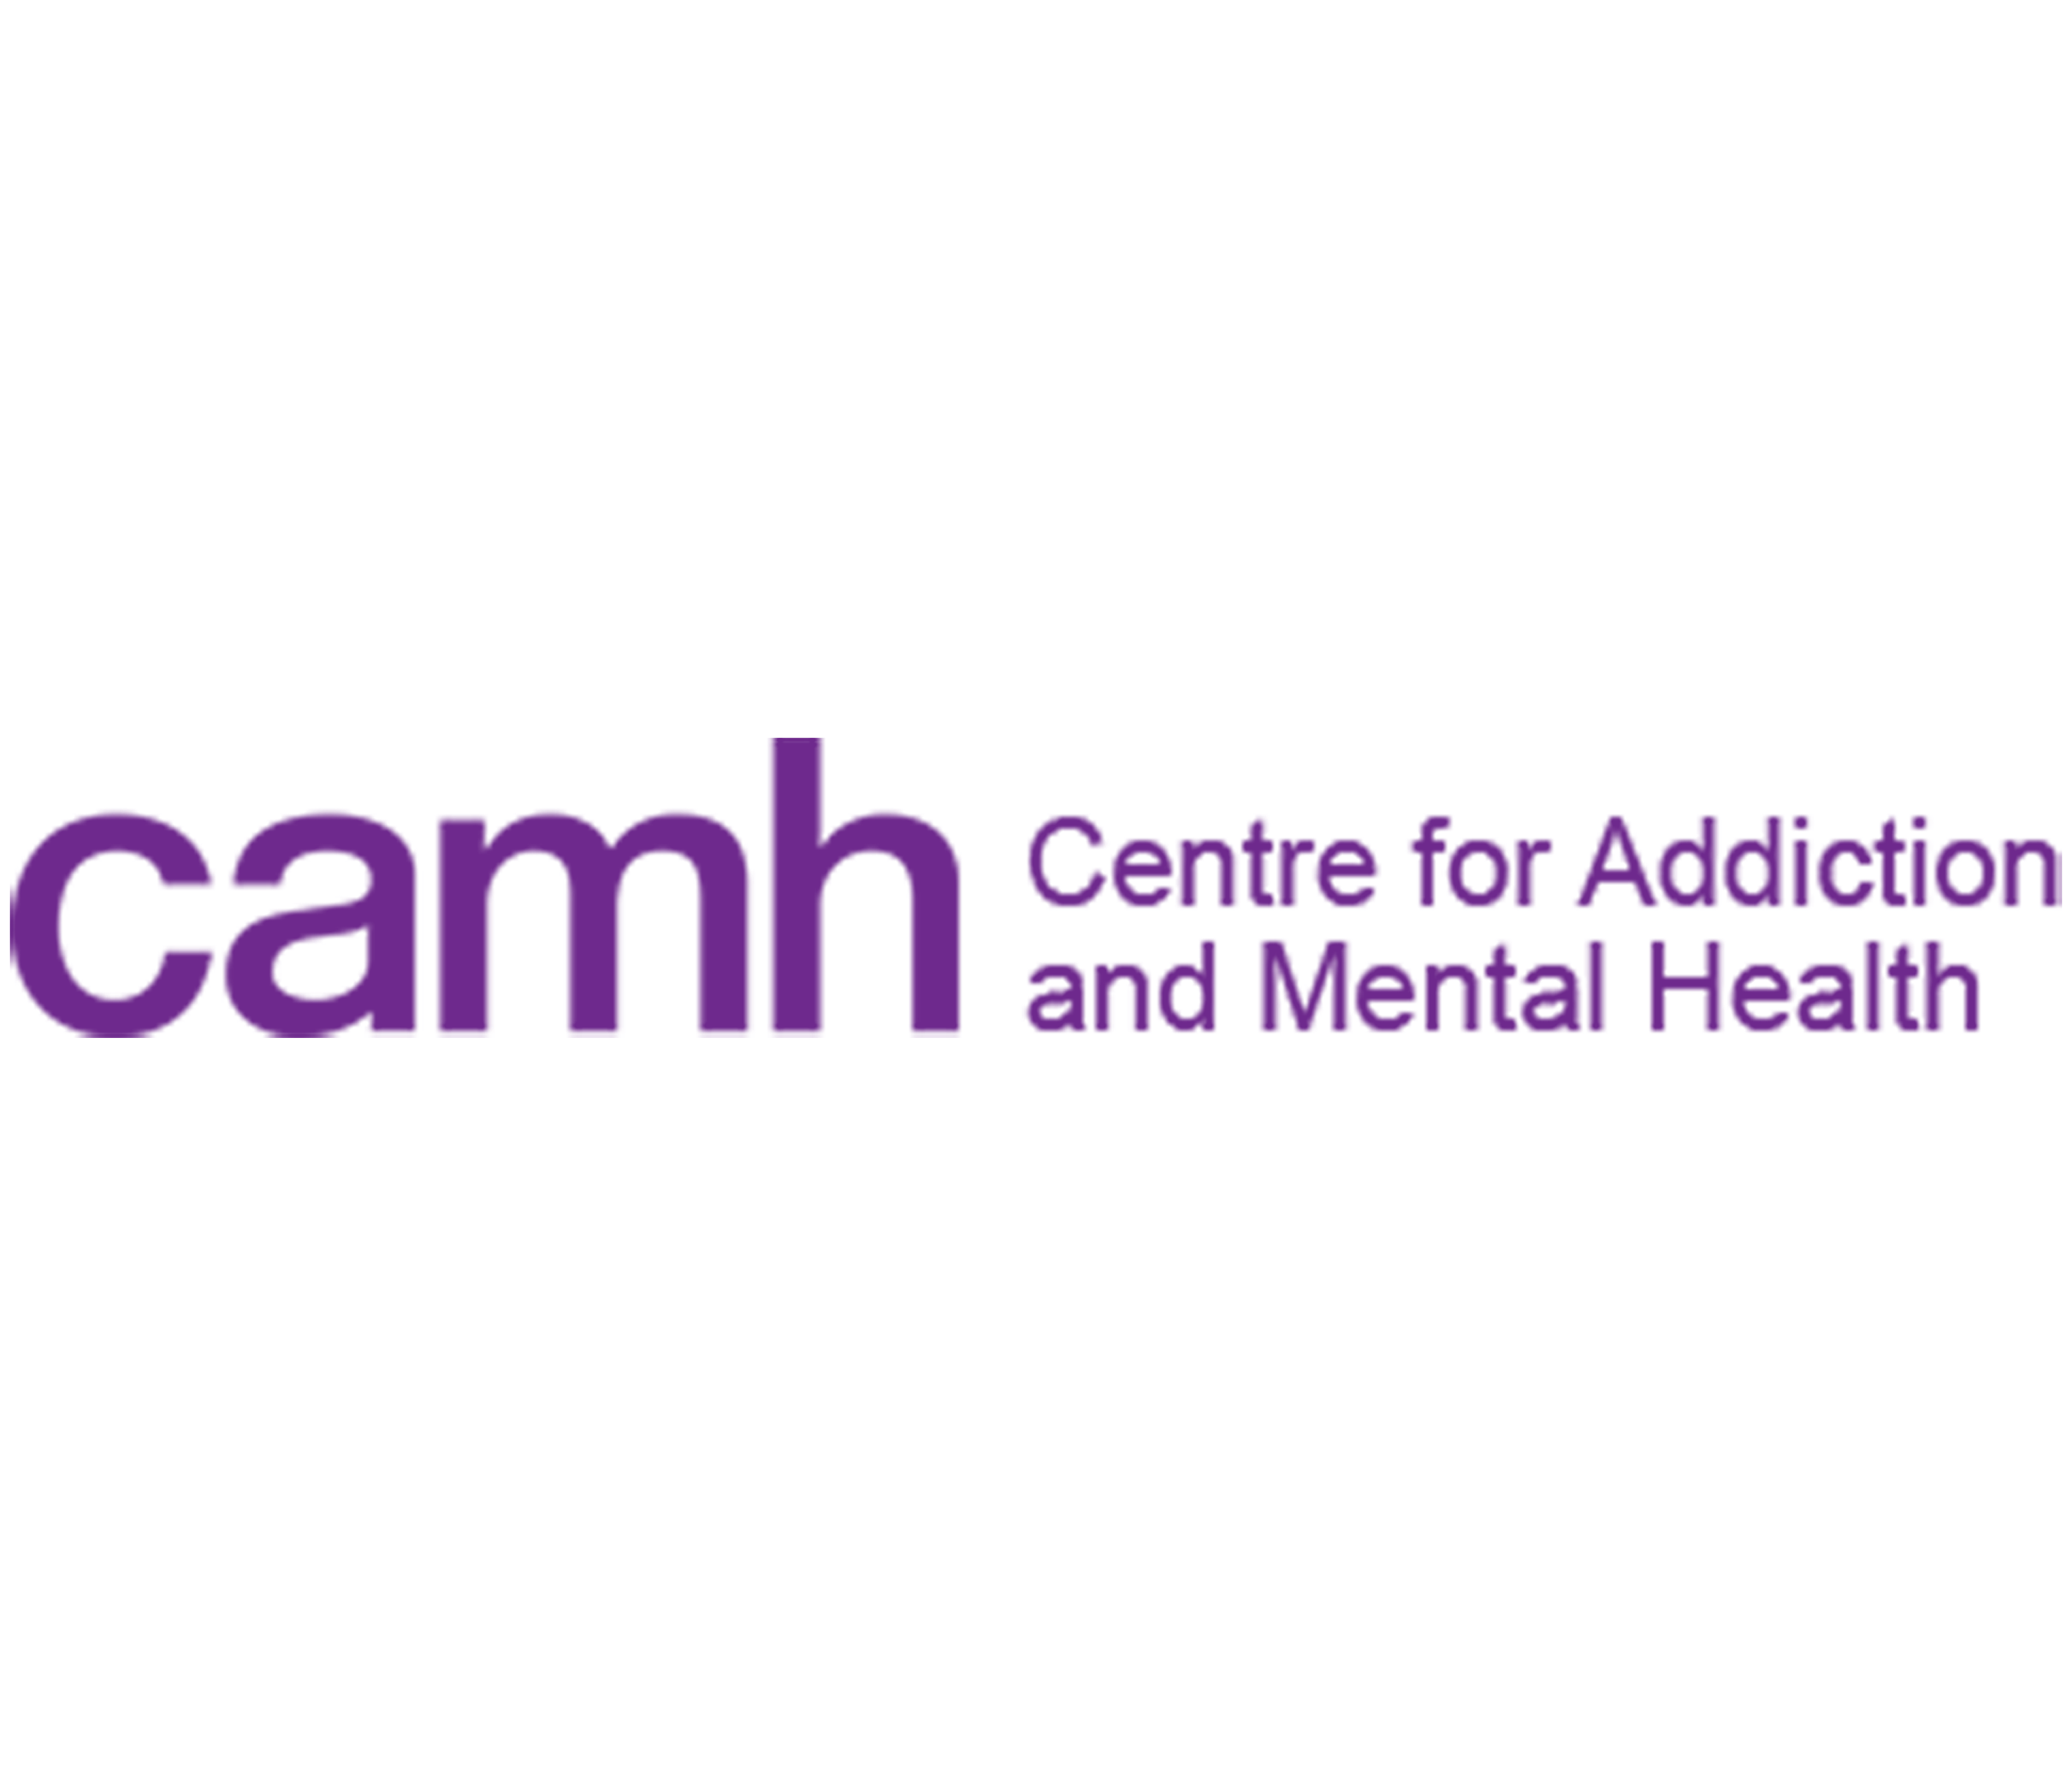 CAMH Centre for Addiction and Mental Health square logo